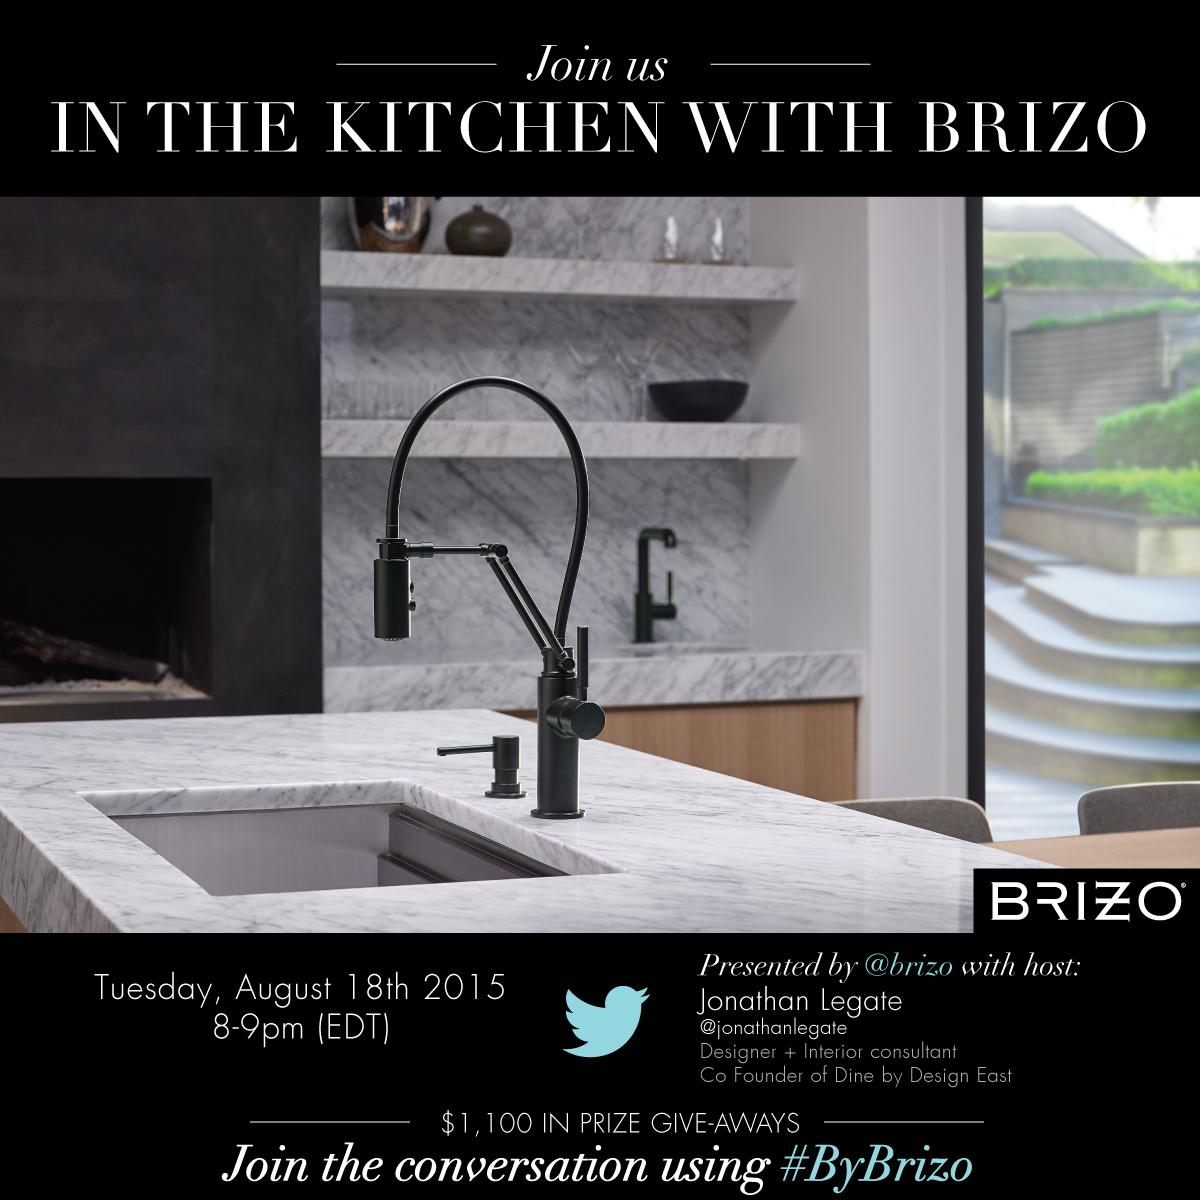 Planning to join our #ByBrizo Twitter party tonight with @jonathanlegate? Be sure to RSVP: http://t.co/7Fl5WW5Fqc http://t.co/tRb0jxDiuu